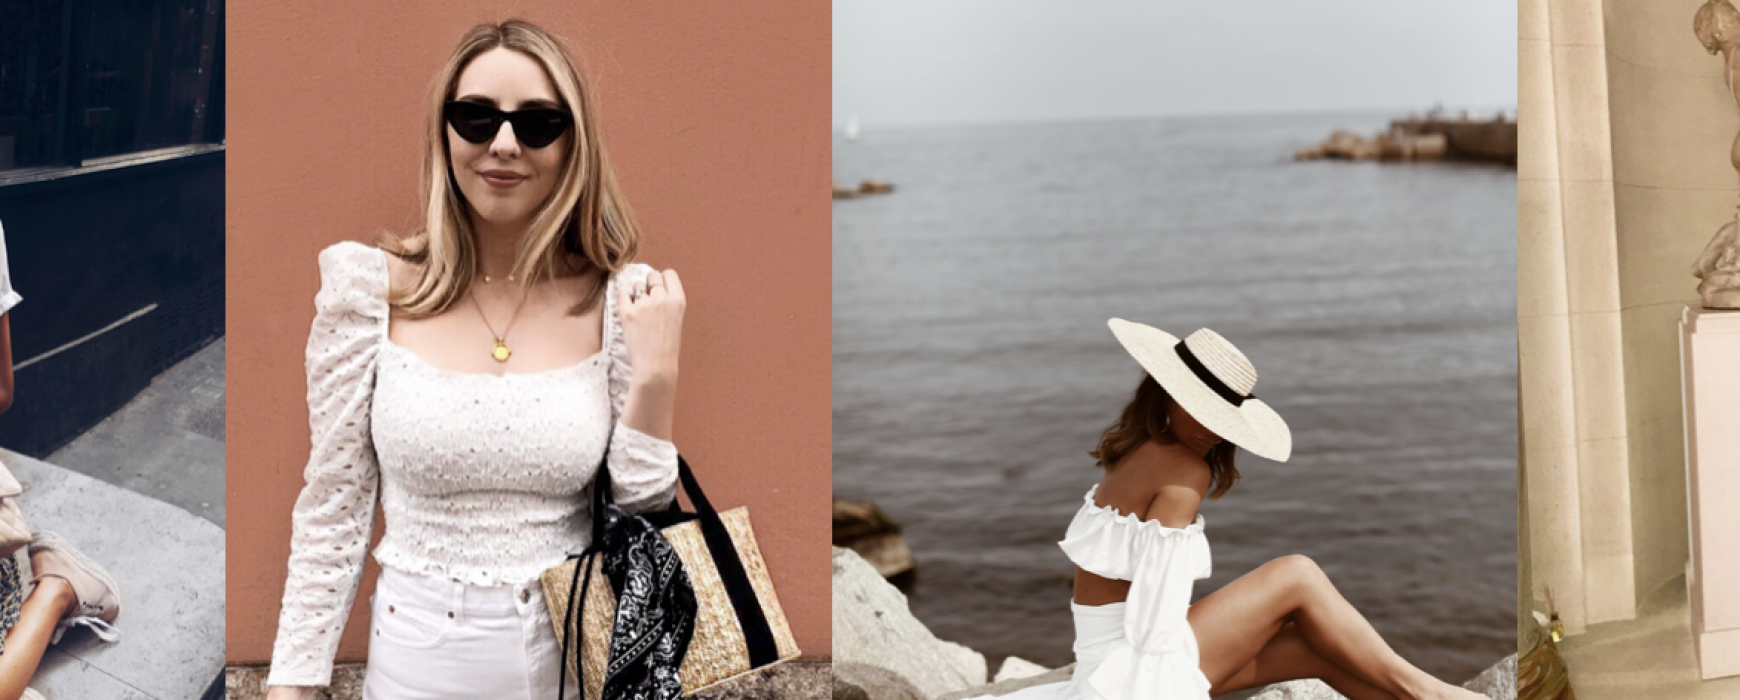 adfc27a1a Six Influencers To Follow For Summer Style Inspiration